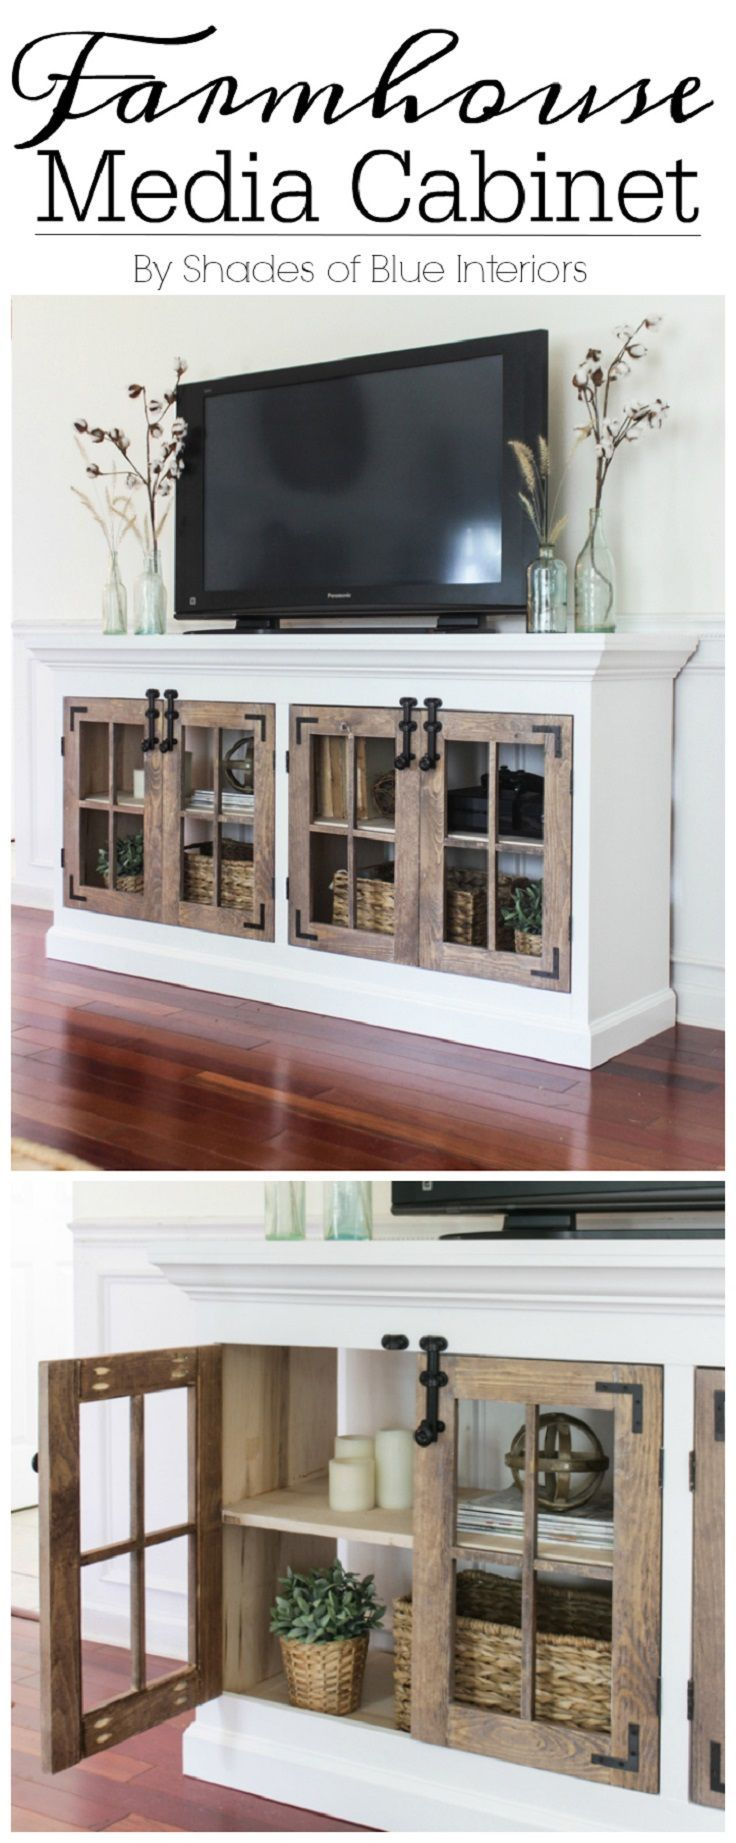 crown kitchen cabinets best 20 furniture projects ideas on diy home 14247